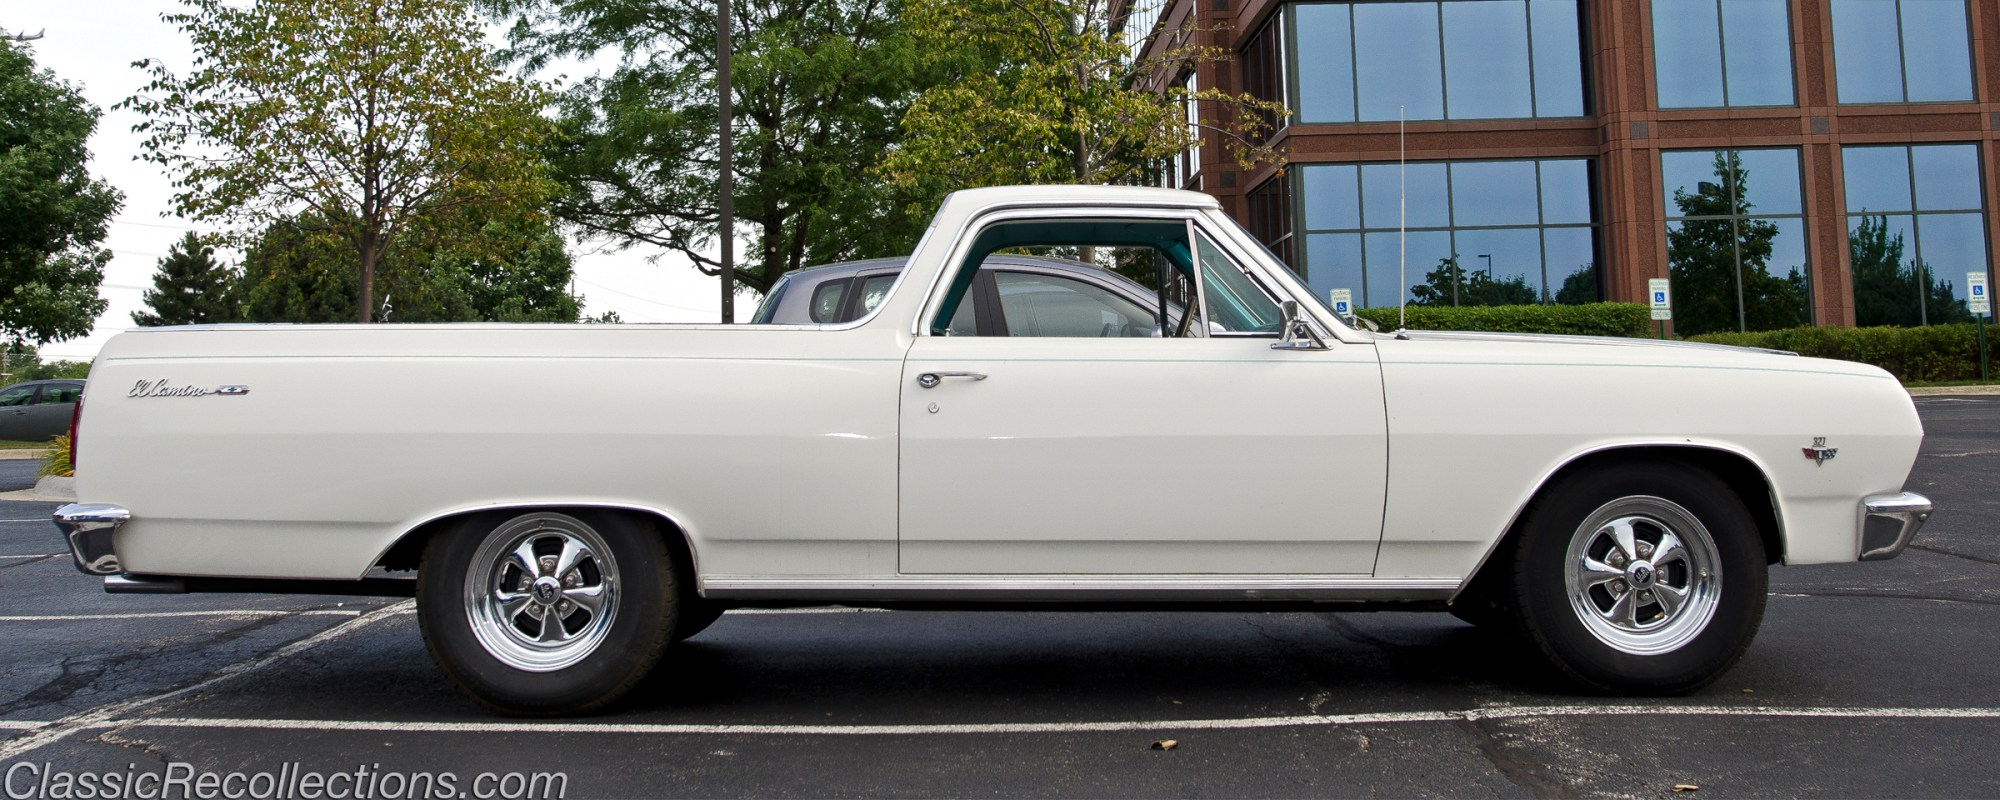 hight resolution of this classic 1965 chevrolet el camino was found in iown towing a race car